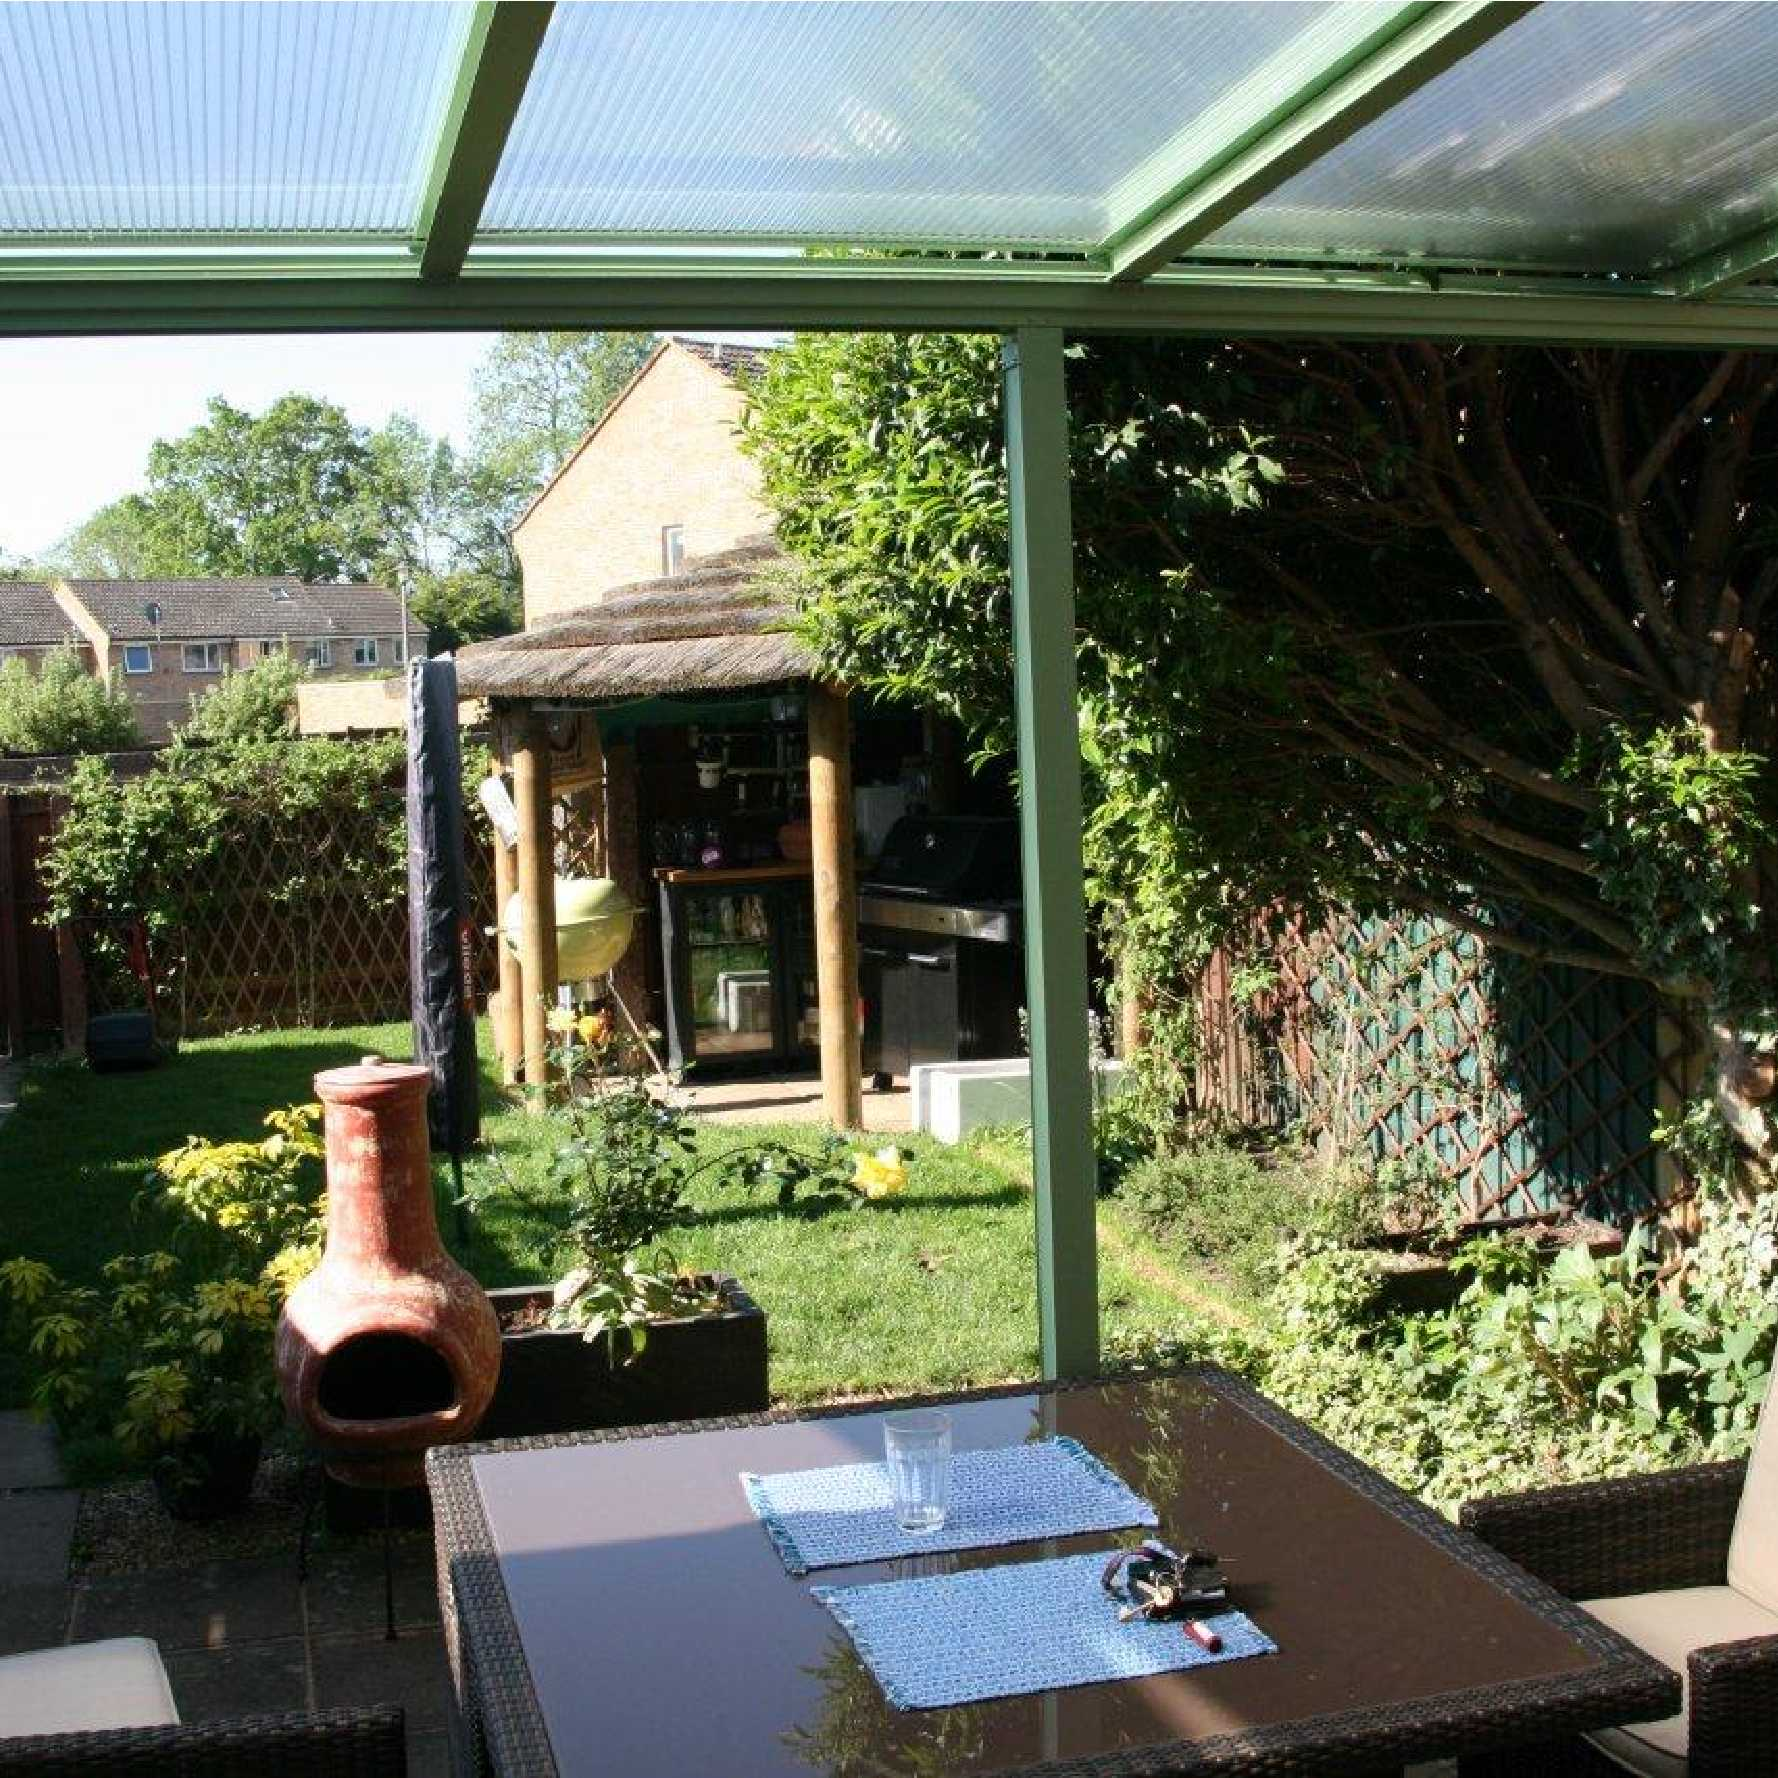 Affordable Omega Smart Lean-To Canopy with 16mm Polycarbonate Glazing - 11.6m (W) x 2.5m (P), (5) Supporting Posts